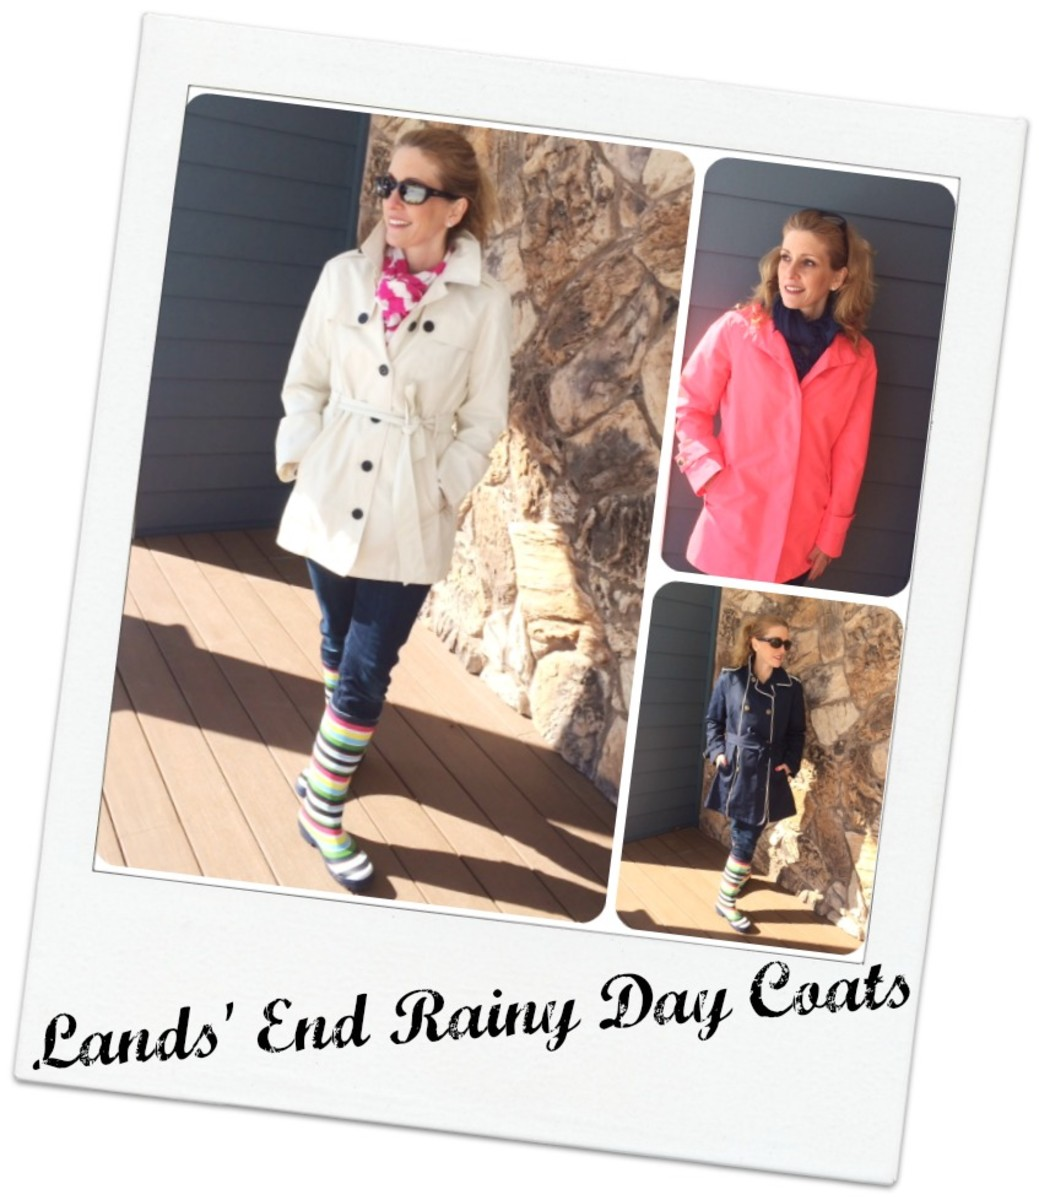 lands end raincoats